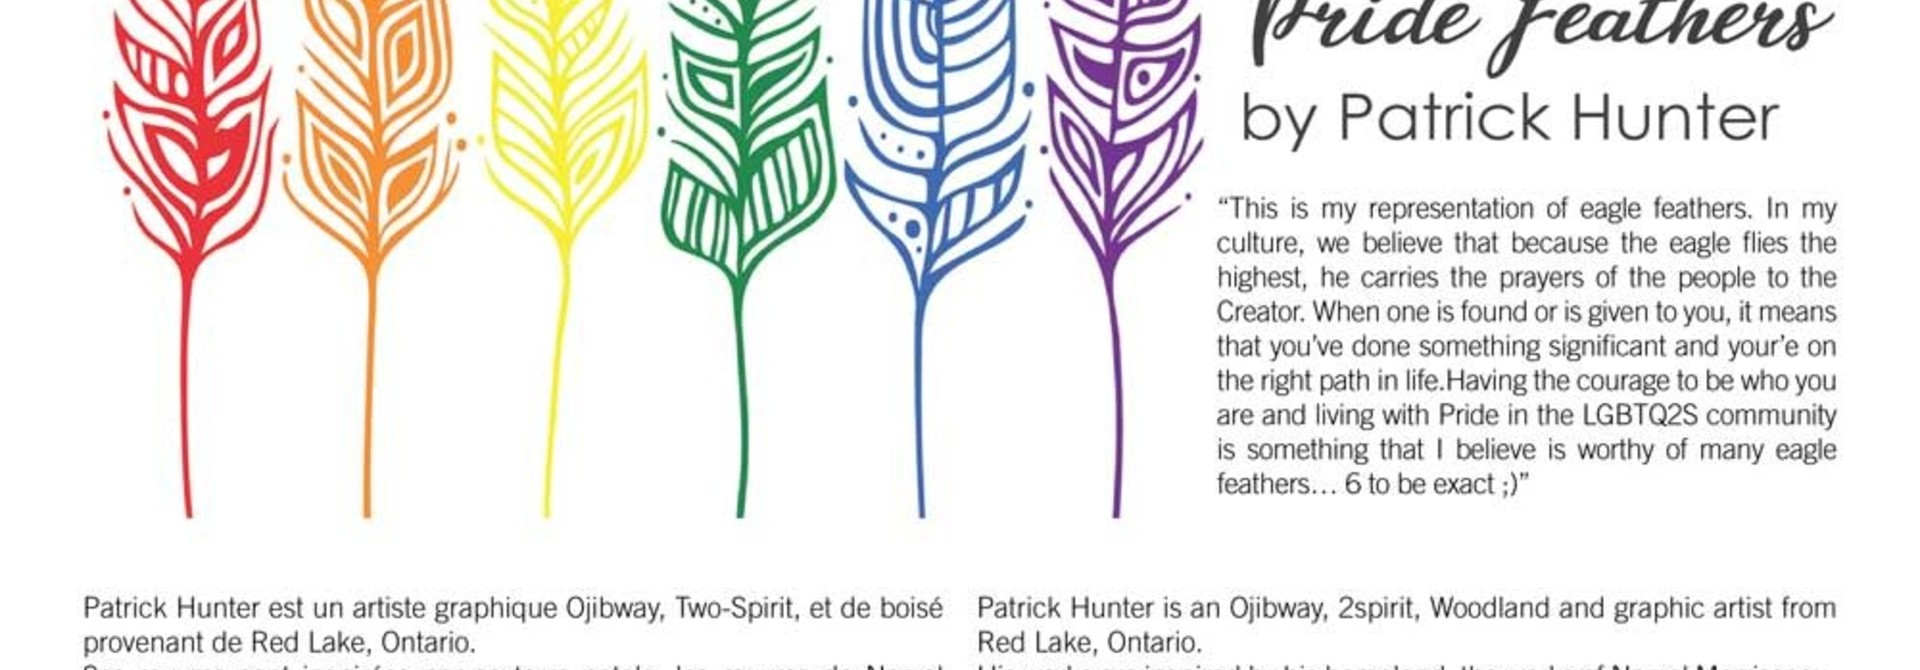 Pride Feathers - Boxed cards by Patrick Hunter